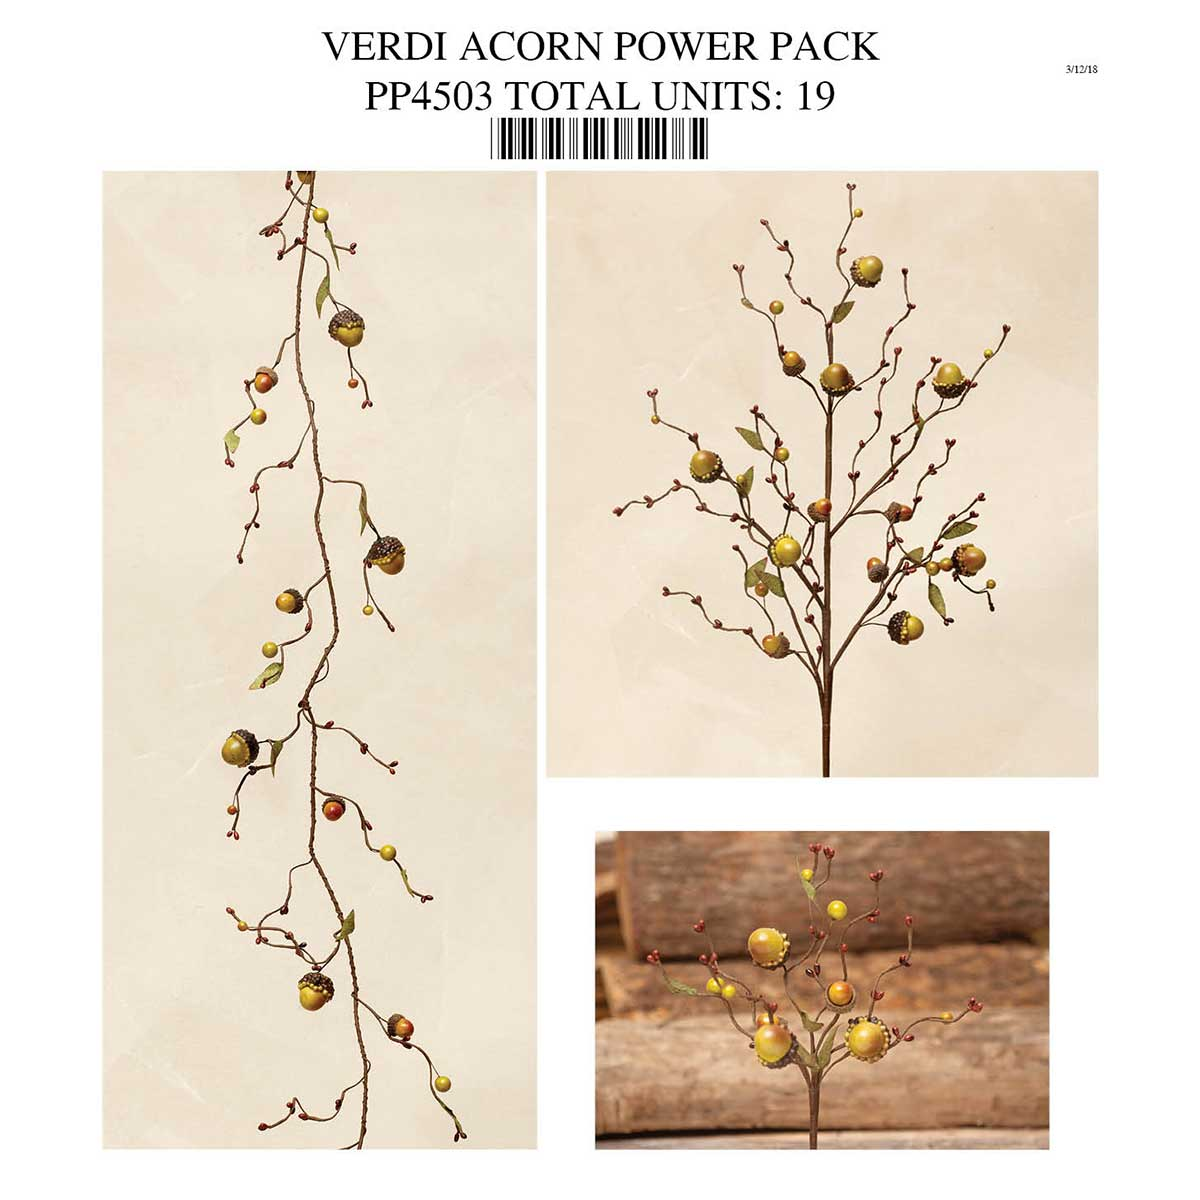 Green Acorn Power Pack Collection 19 Units